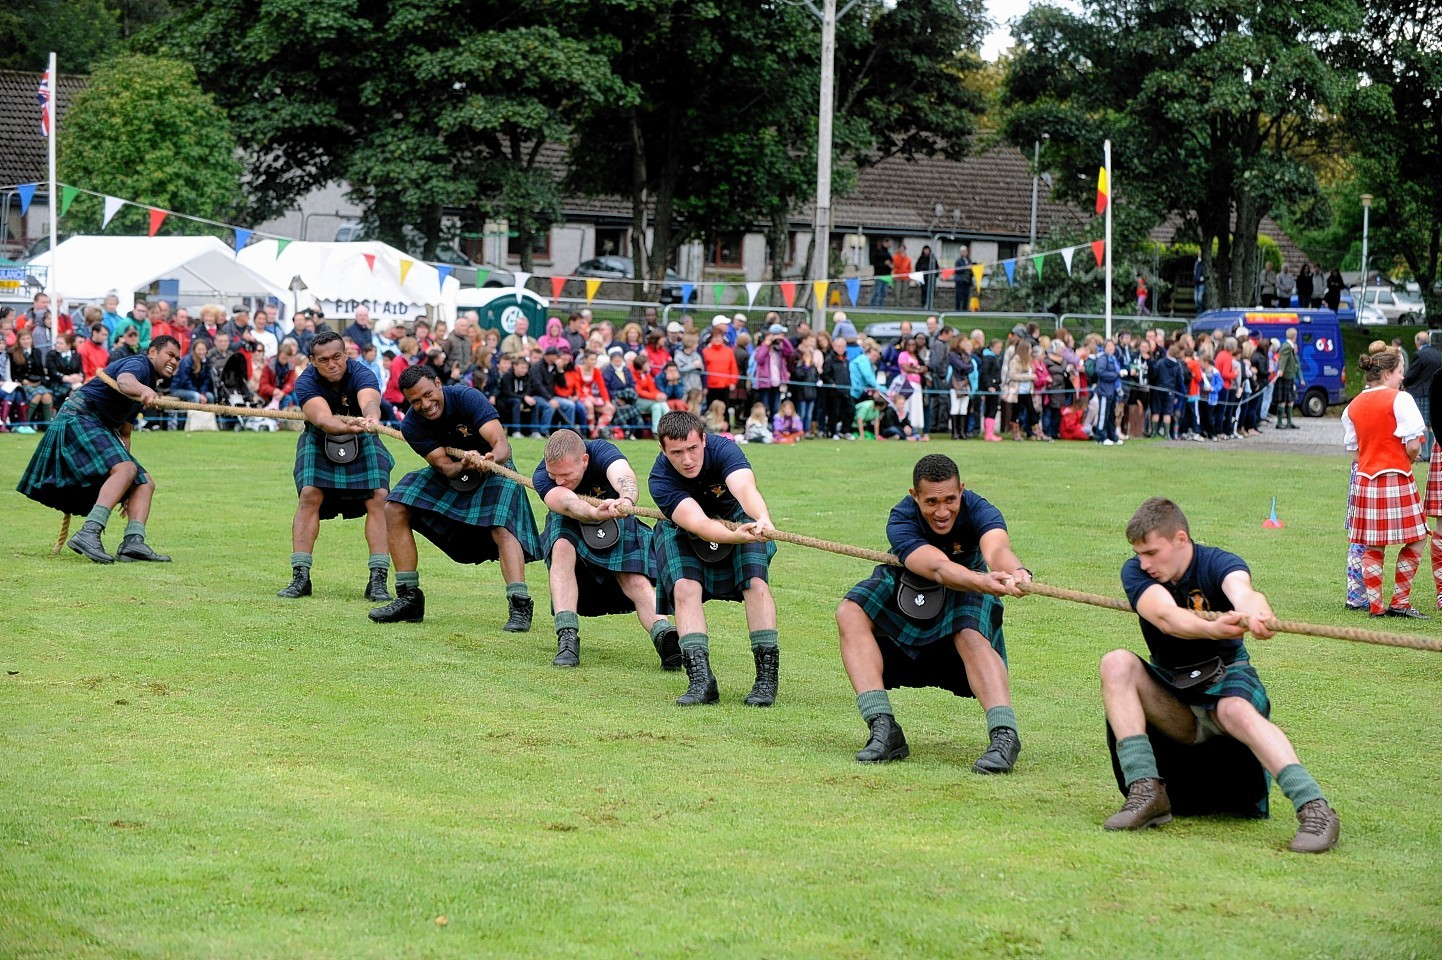 The tug o' war at Ballater Highland Games